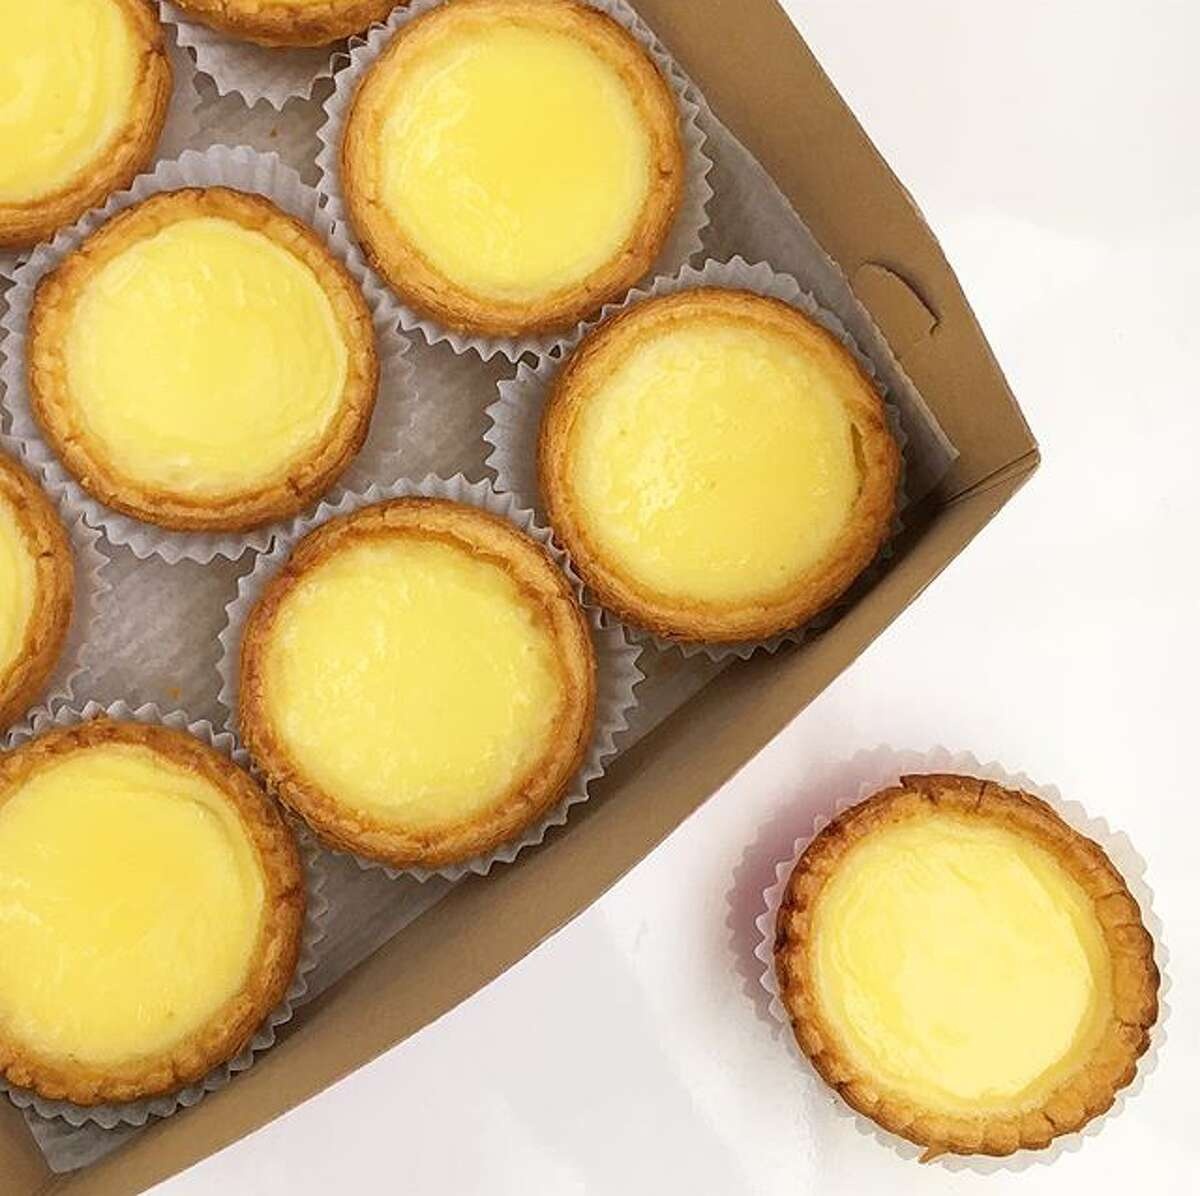 Egg tarts at Golden Gate Bakery in Chinatown.